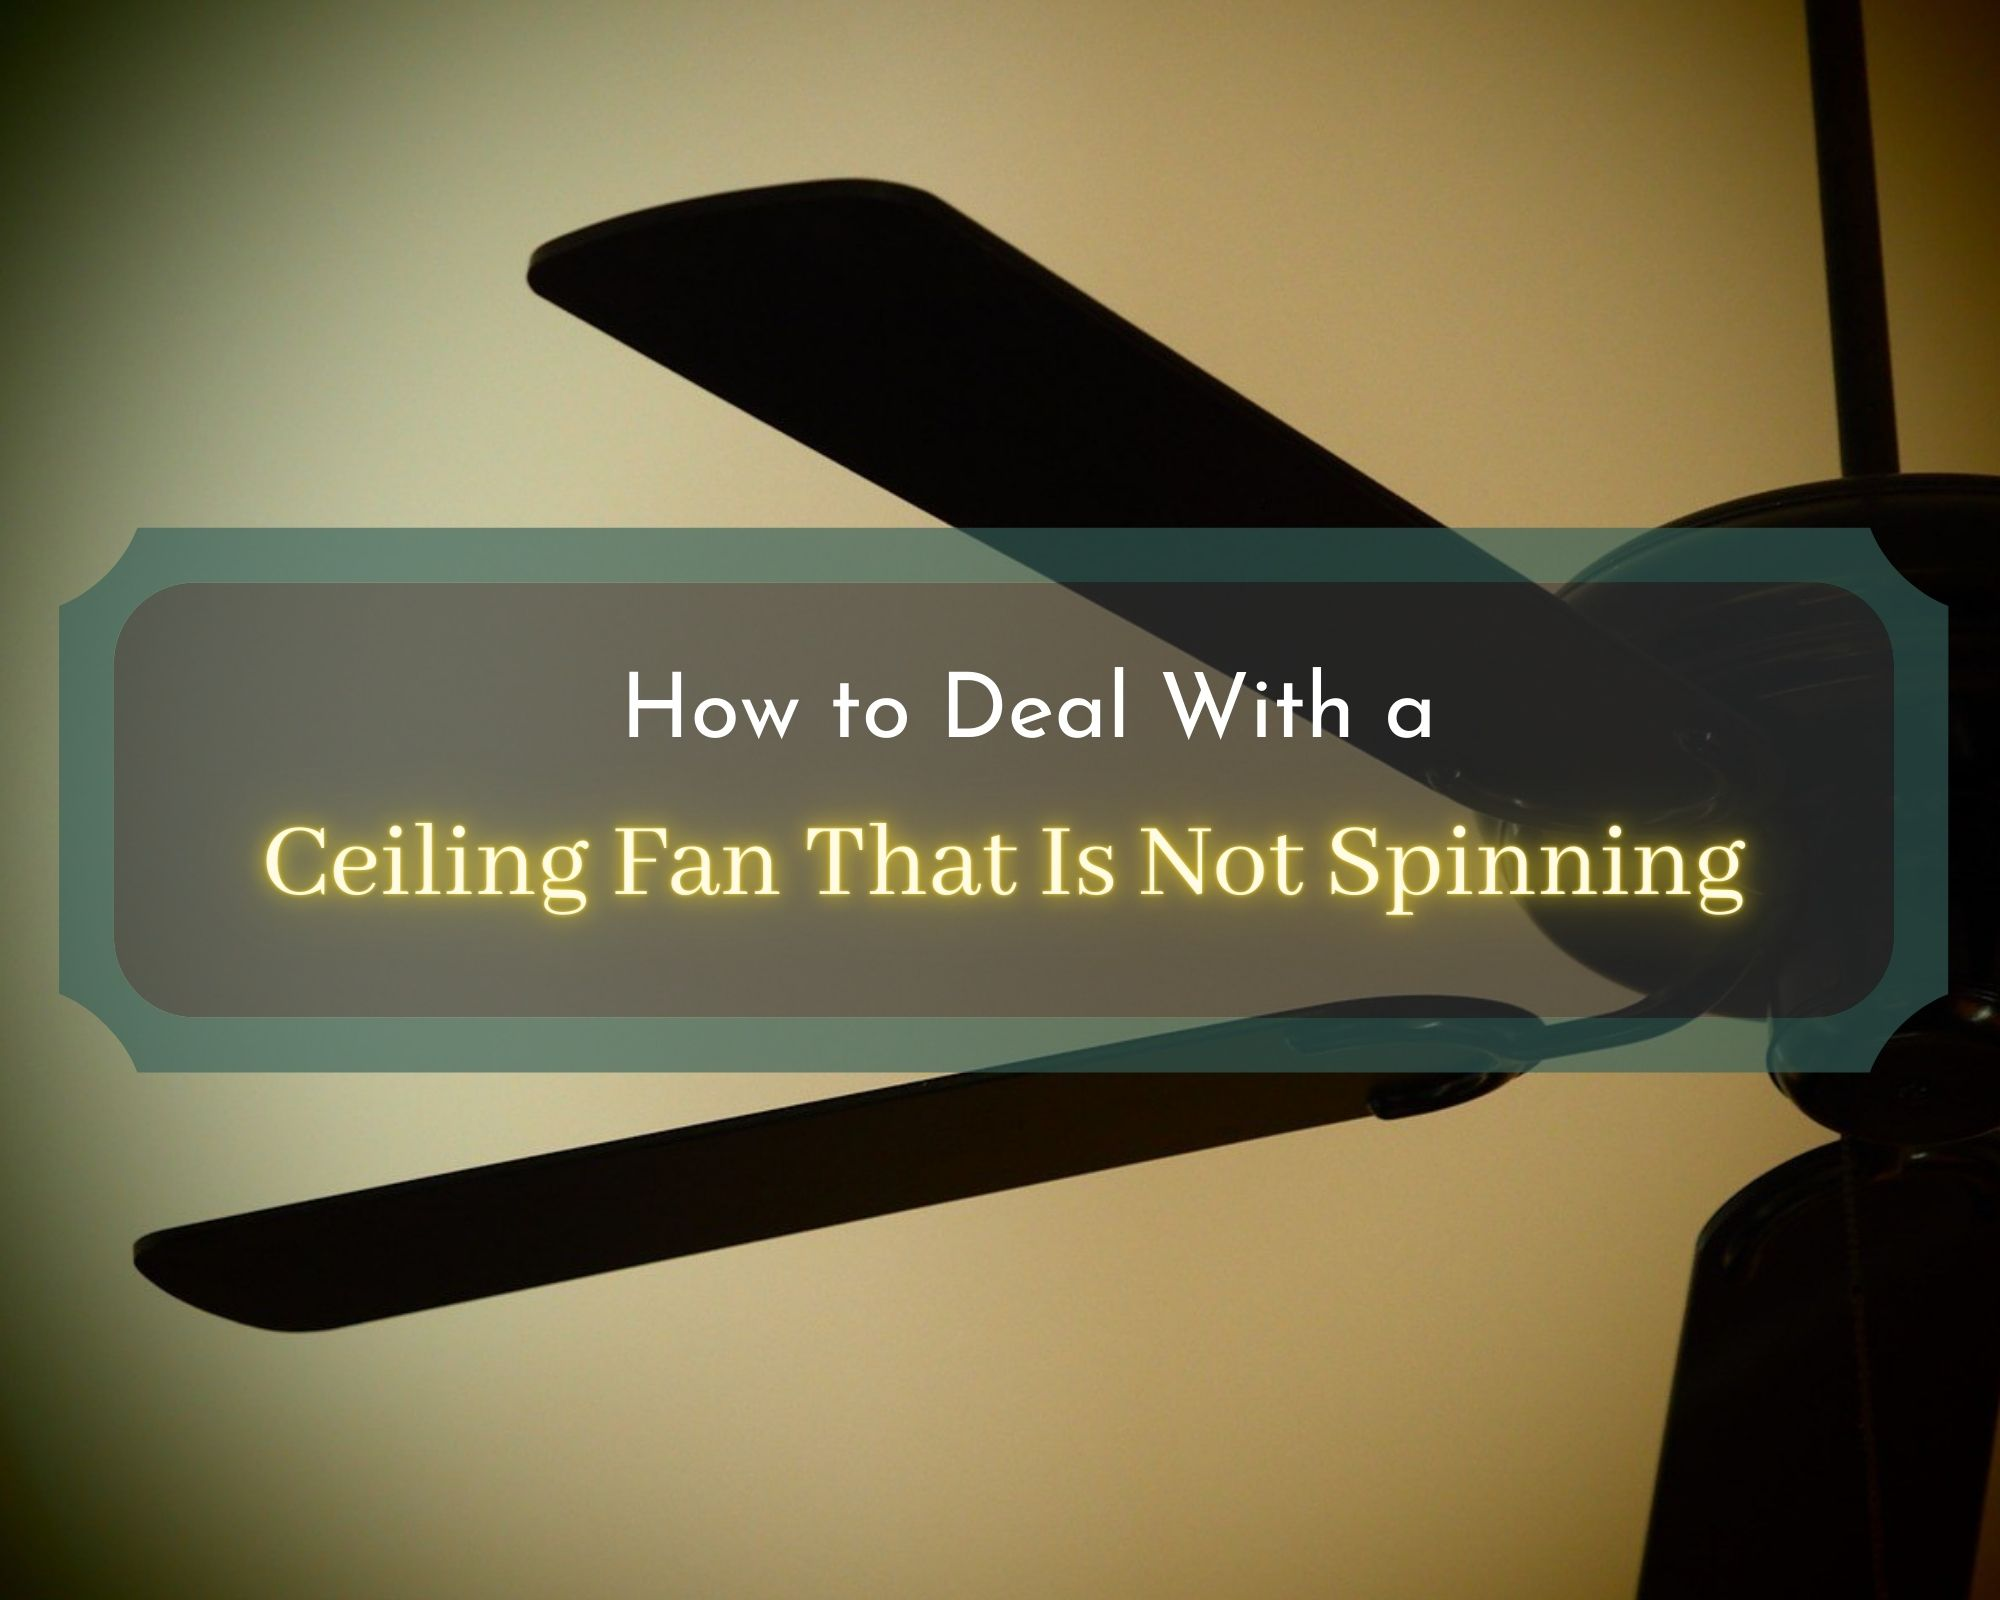 Ceiling fan that is not spinning